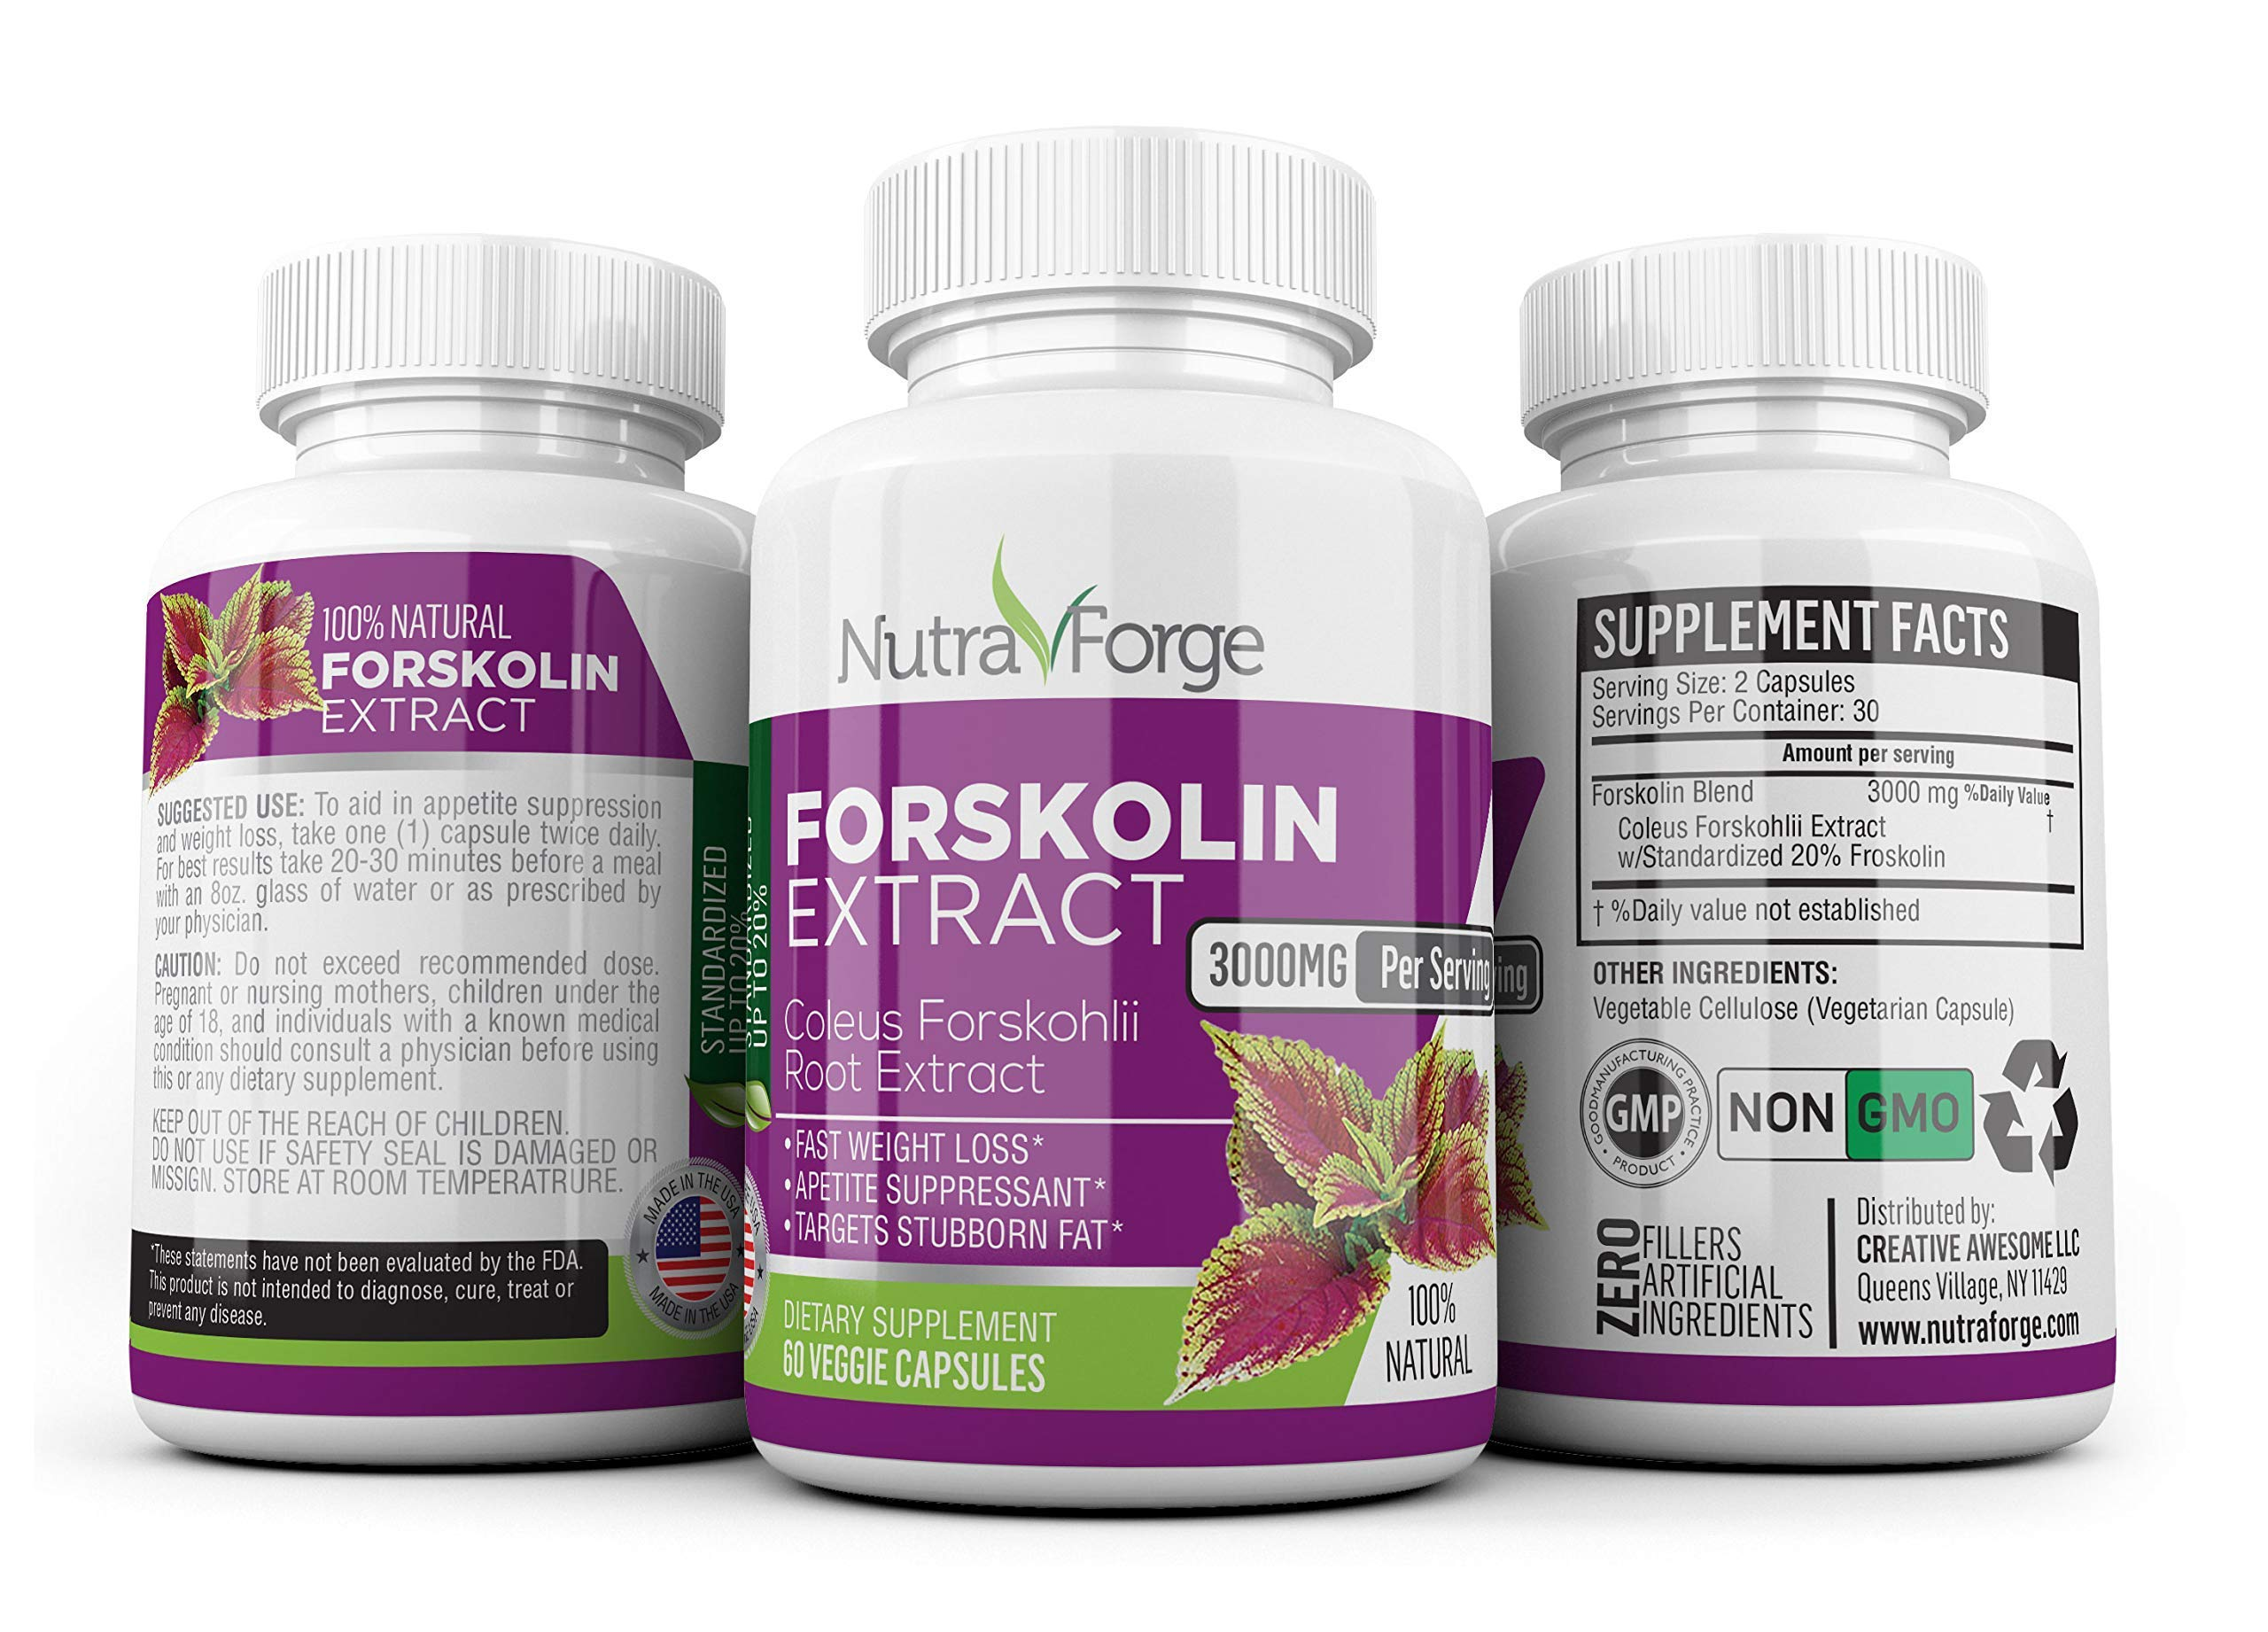 Pure Forskolin 3000mg Max Strength - Forskolin Extract for Weight Loss - Premium Appetite Suppressant, Metabolism Booster, Carb Blocker & Fat Burner for Men and Women - 3 Pack by Nutra Forge (Image #2)